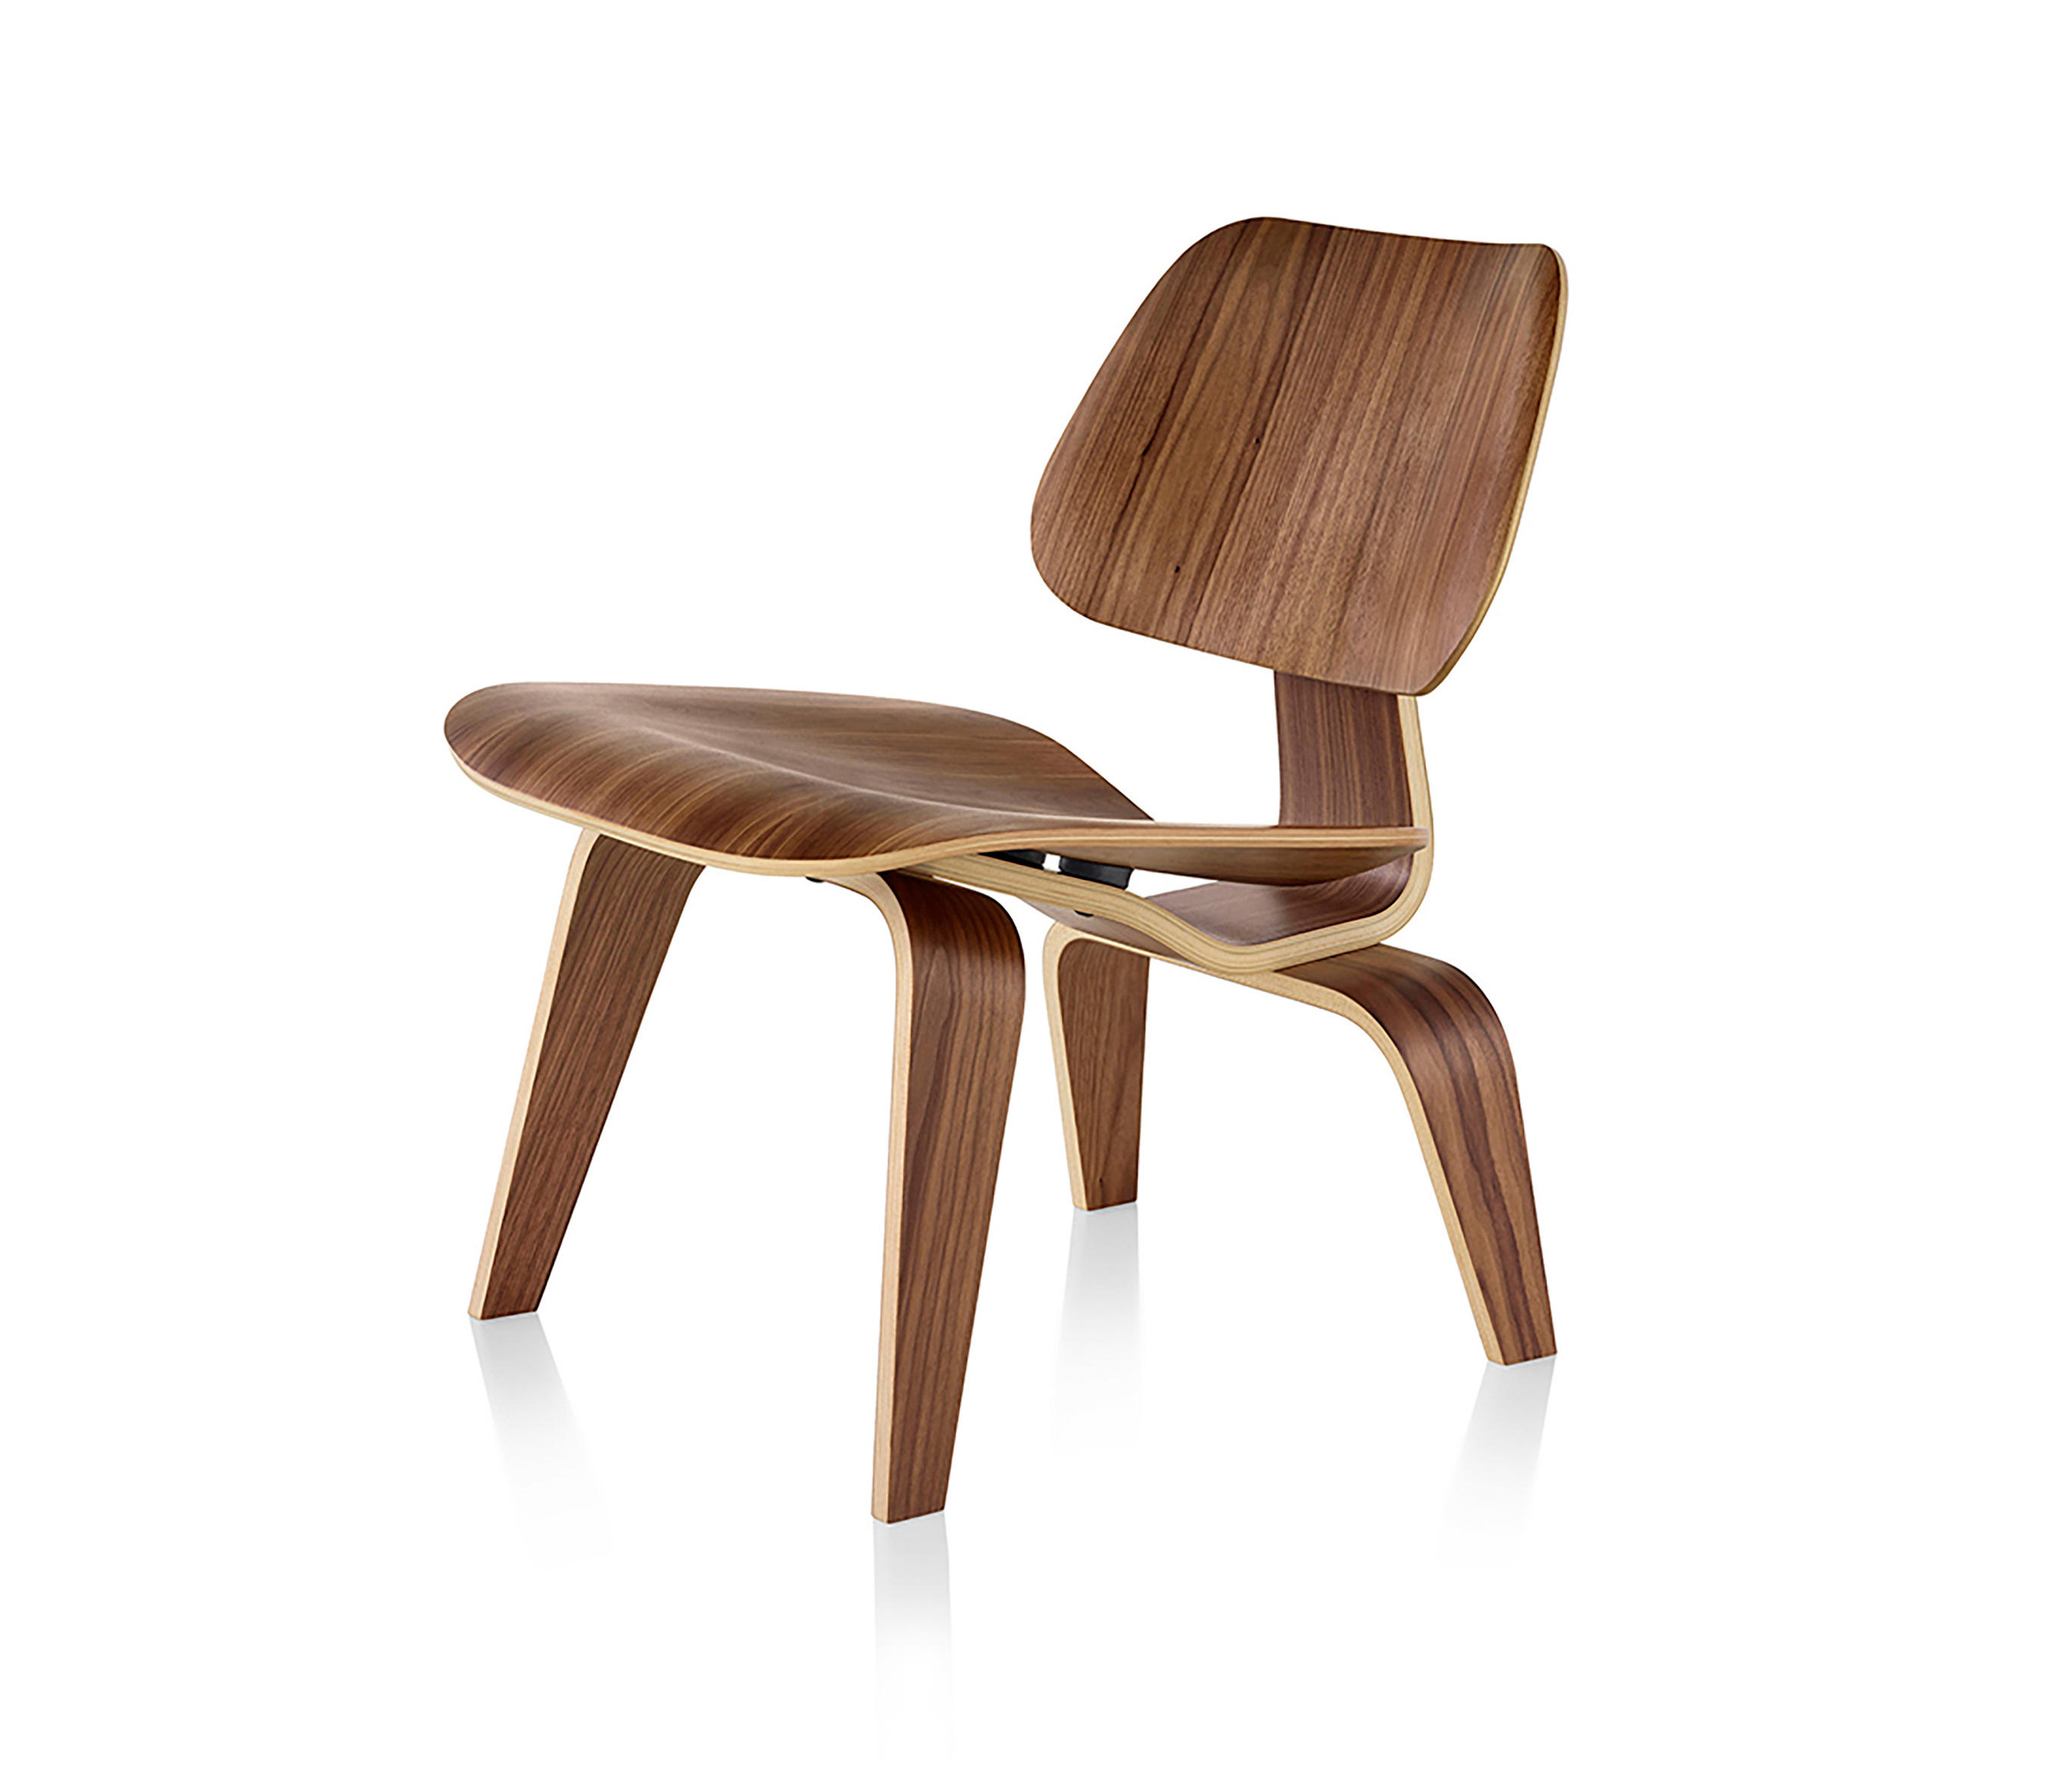 Eames Molded Plywood Lounge Chair Wood Base By Herman Miller | Lounge Chairs  ...